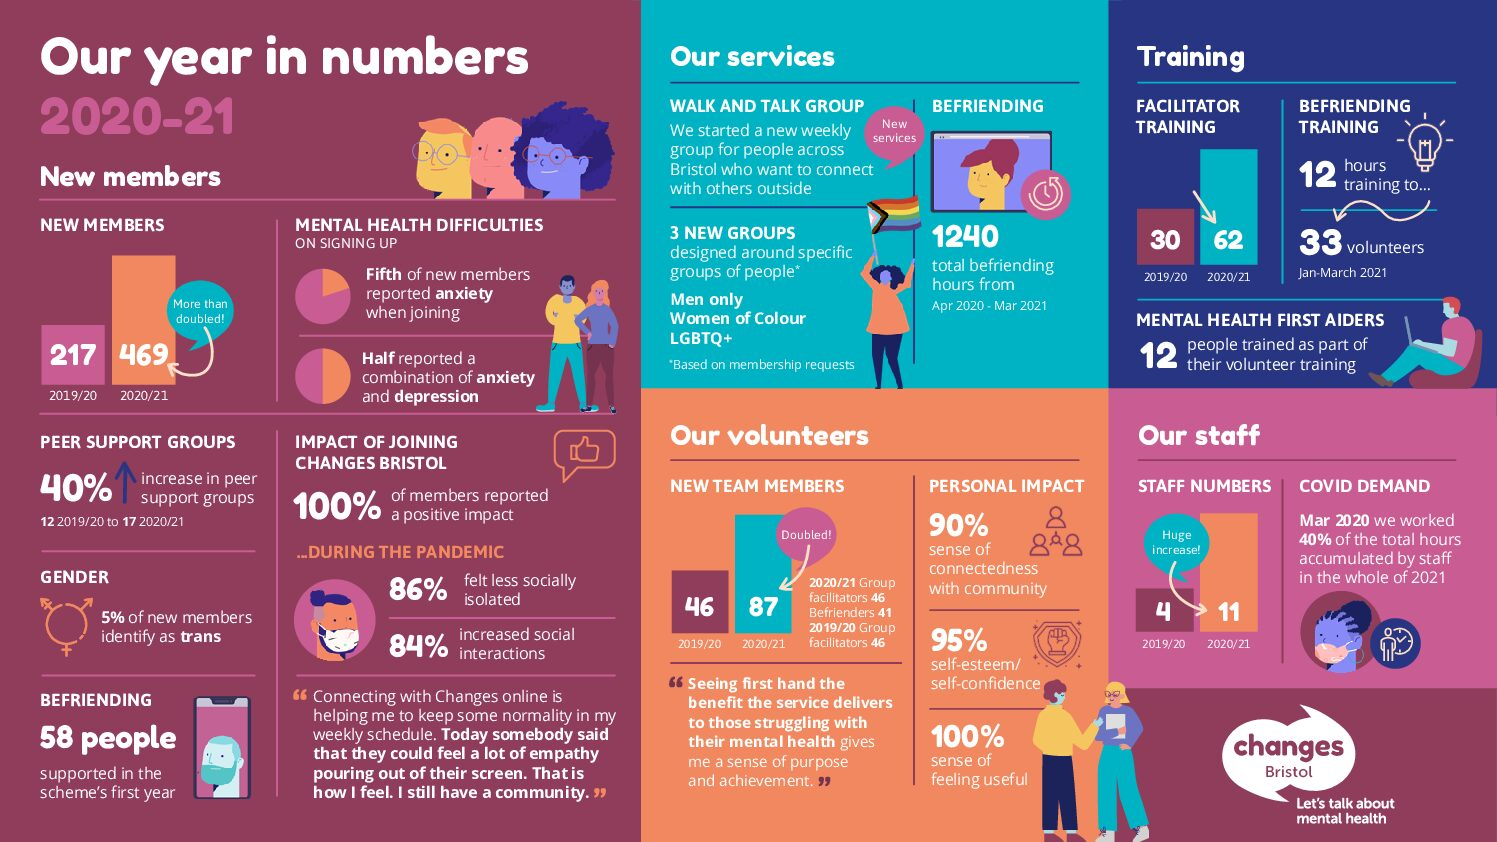 Our Year in Numbers 2020 – 21